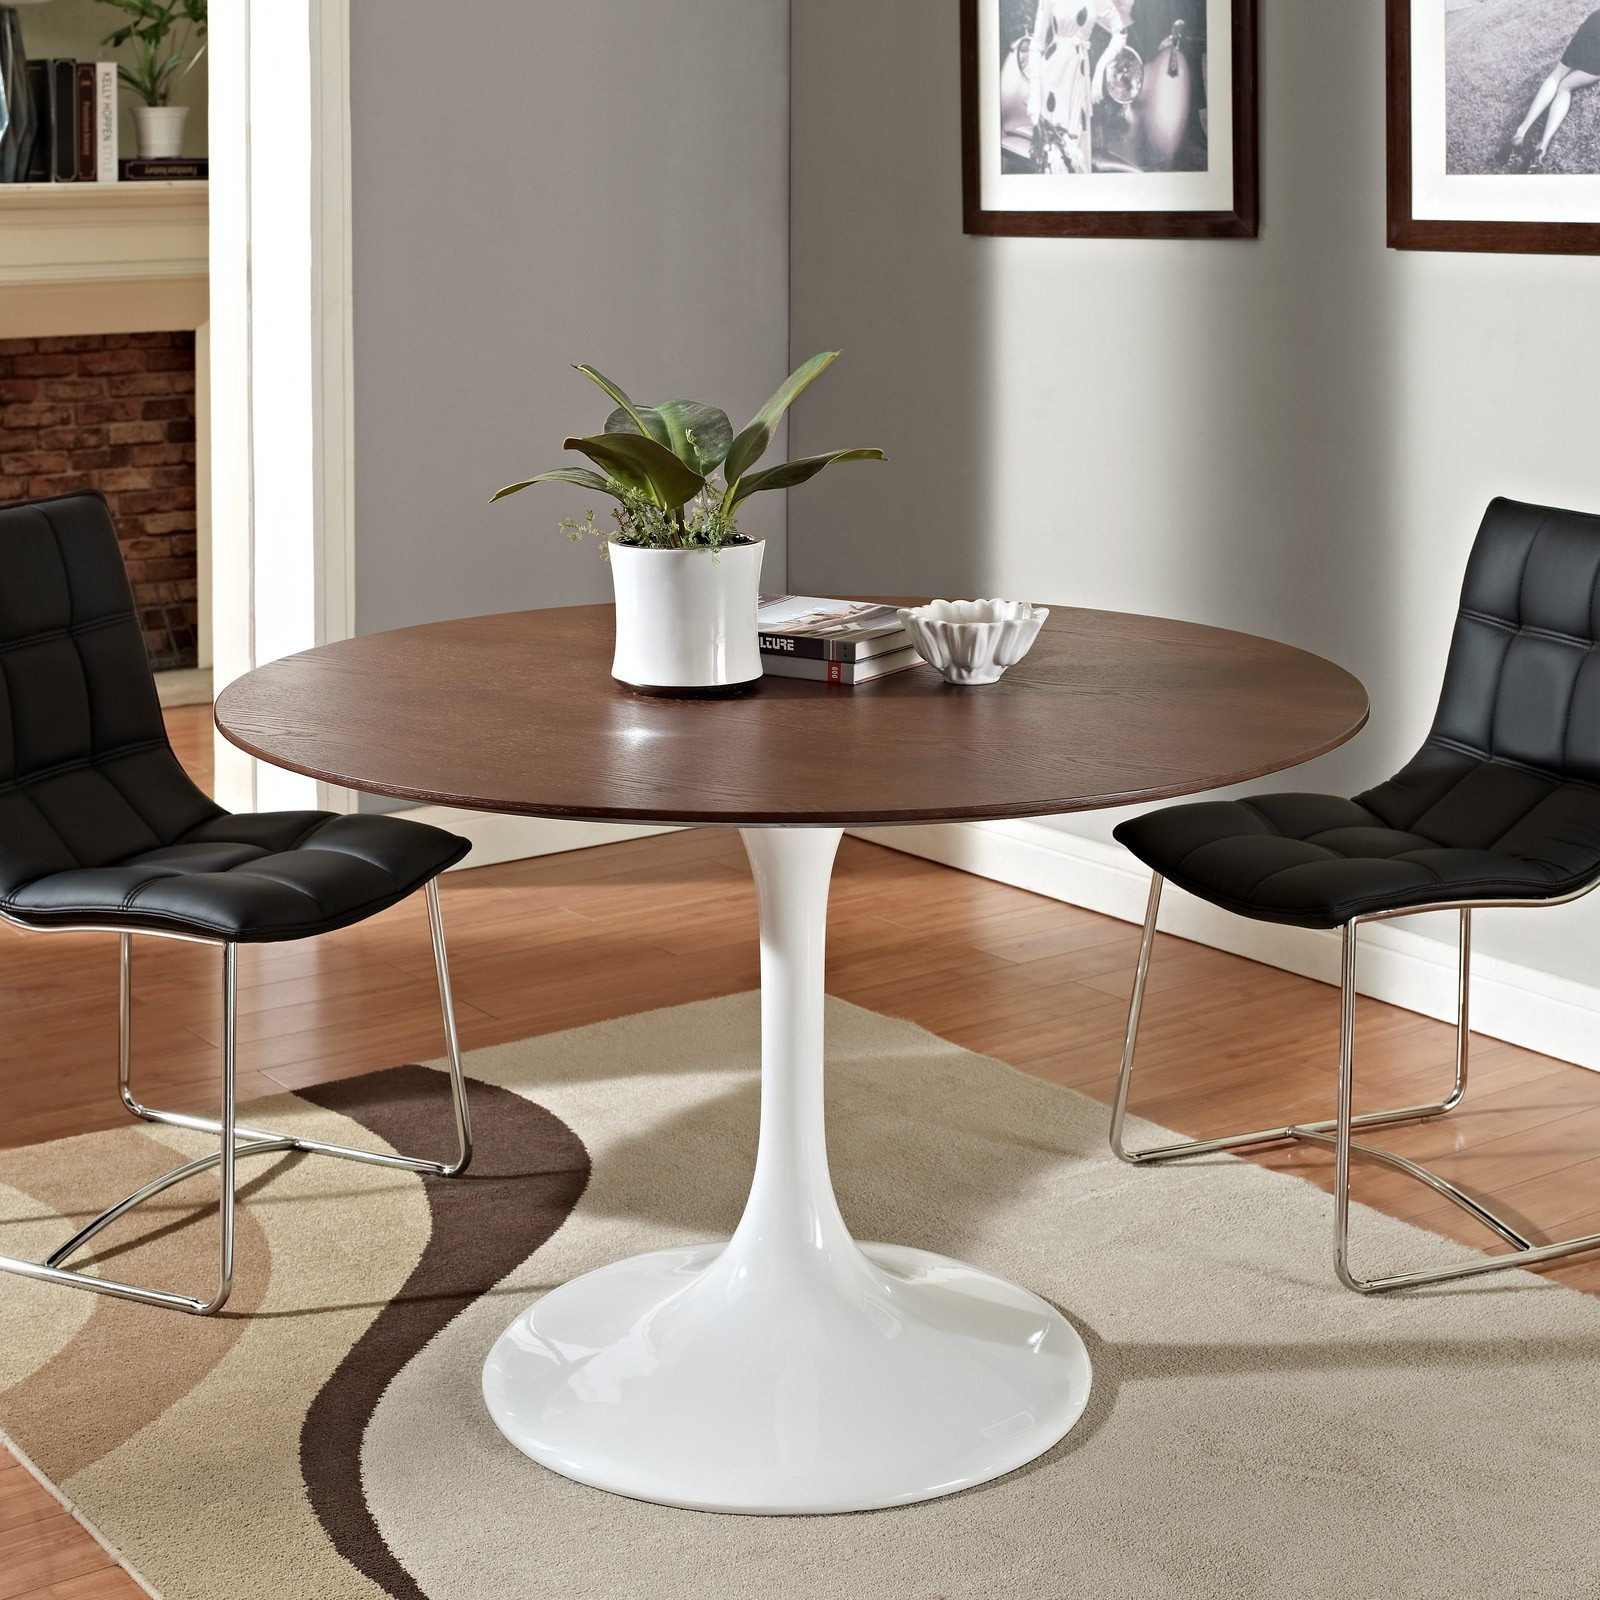 Image of: saarinen tulip table